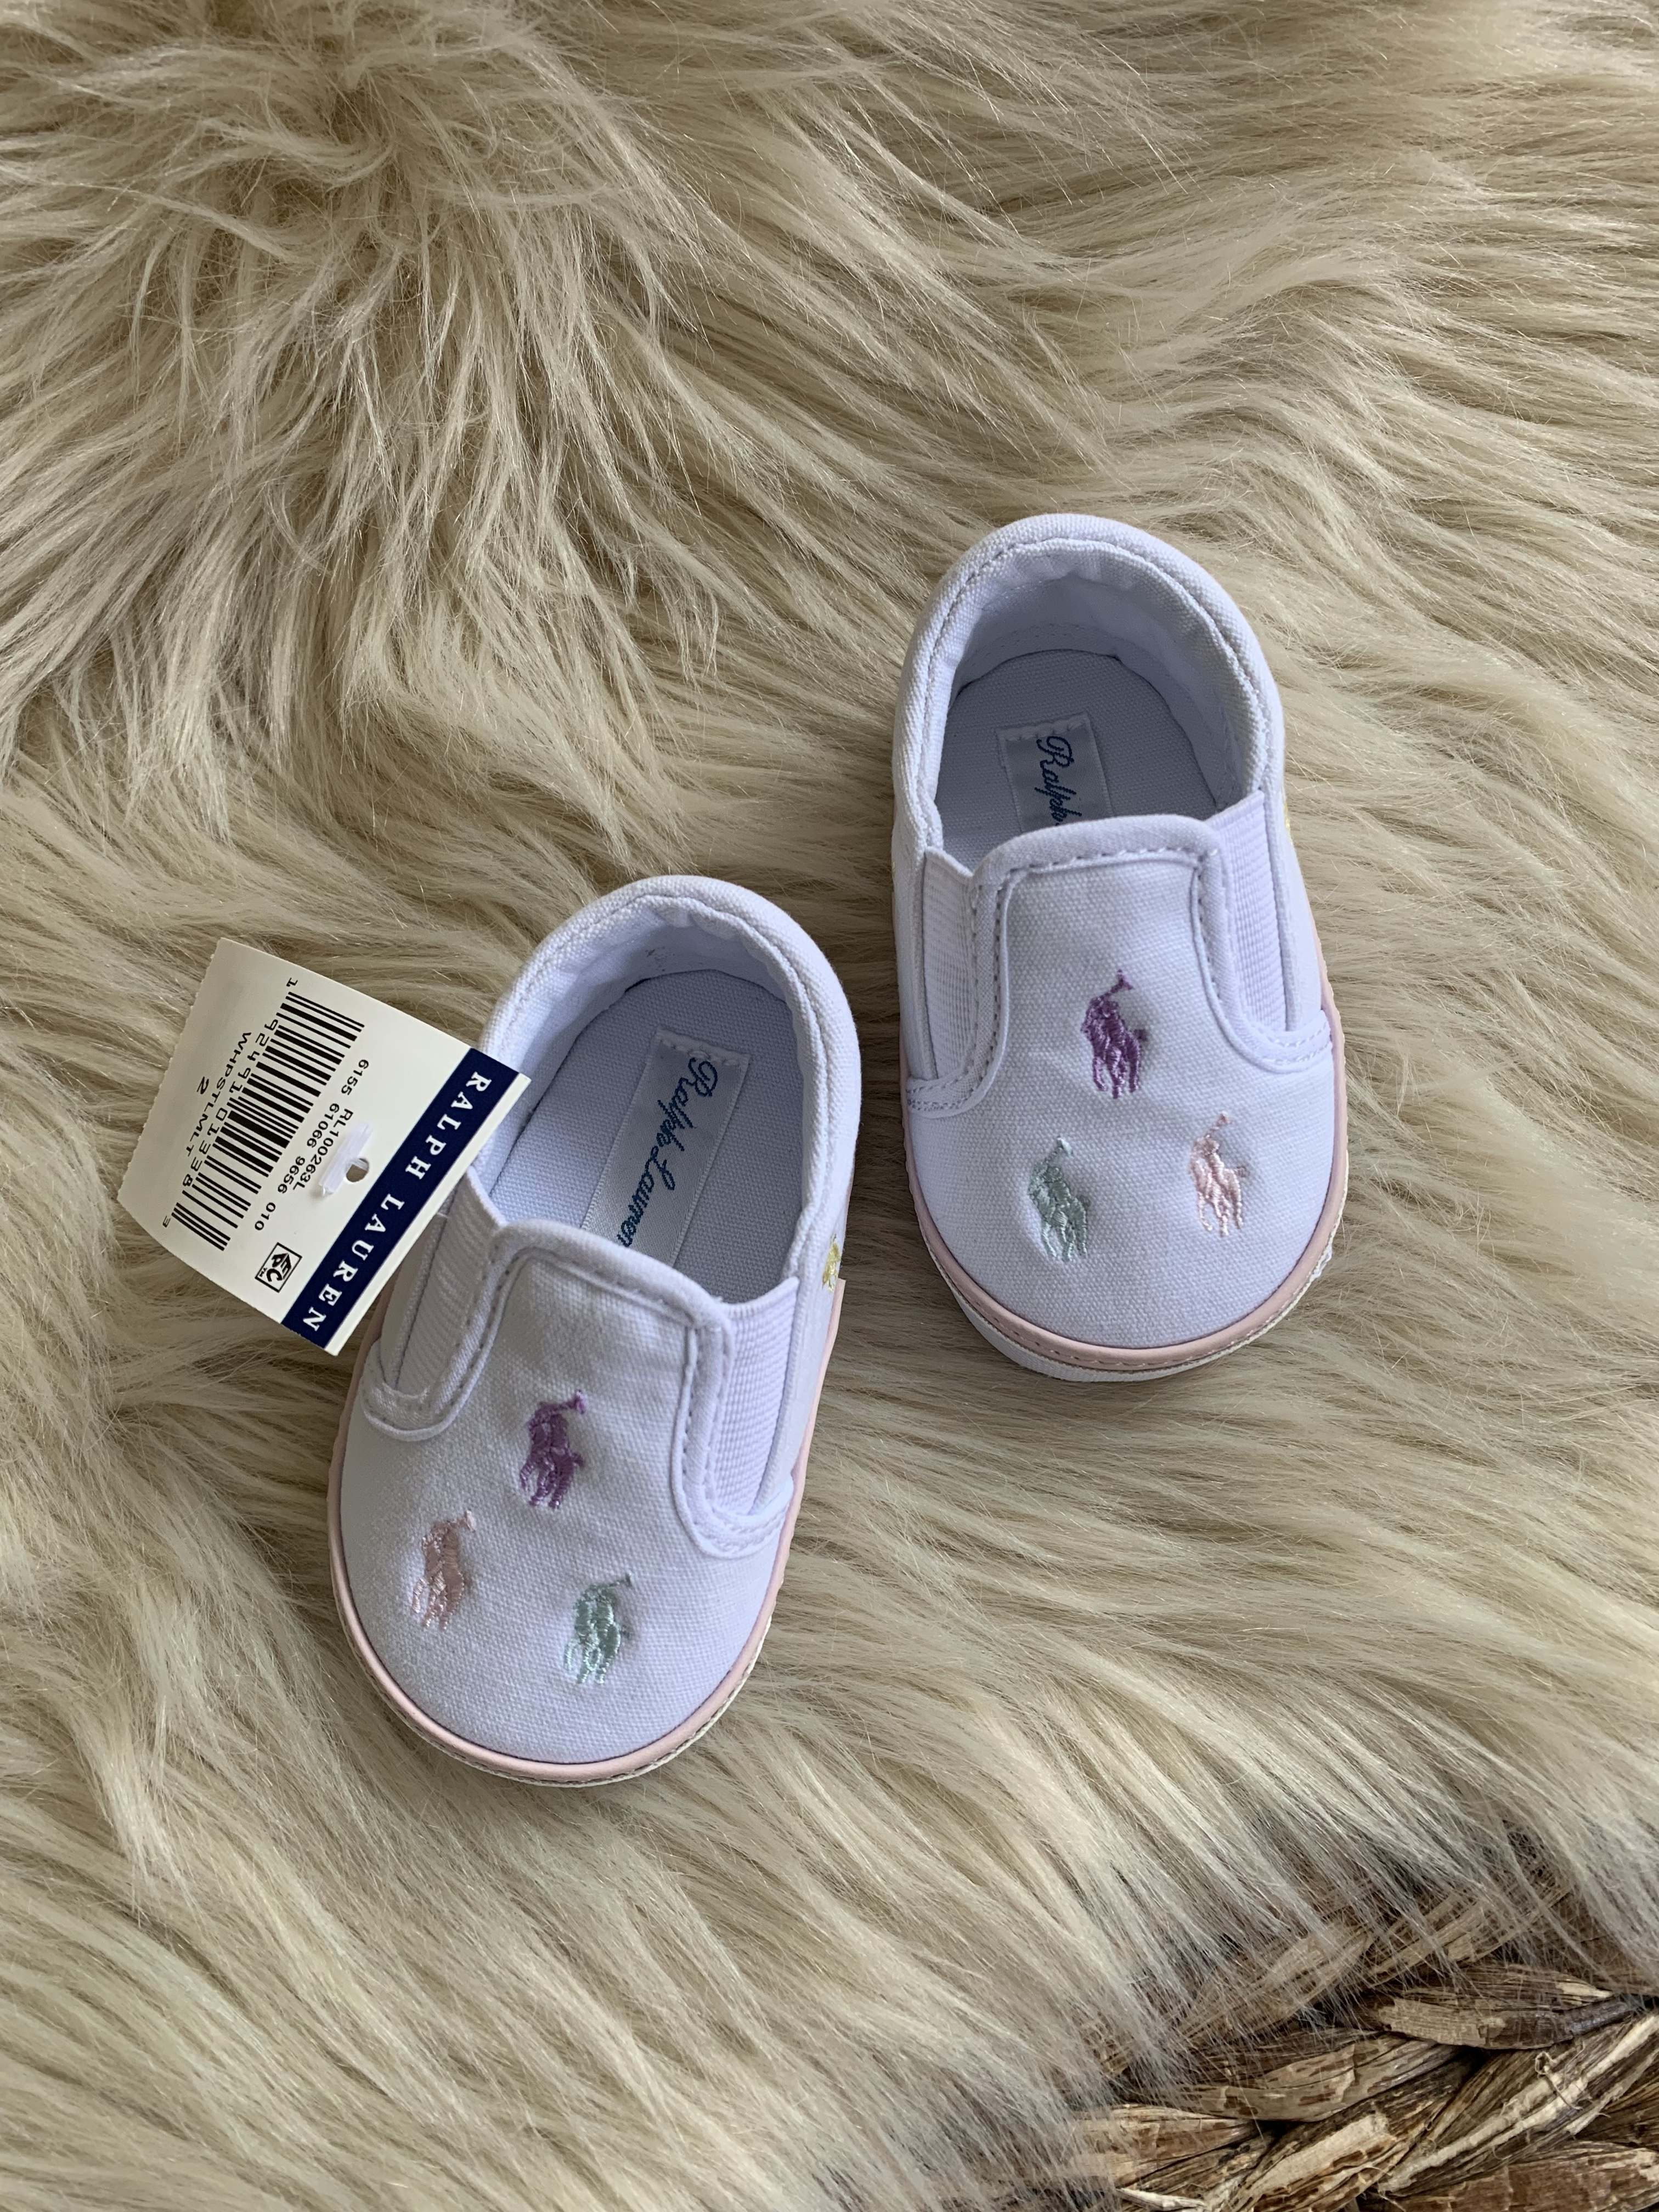 finest selection various design detailed images Ralph Lauren Baby Girl Shoes